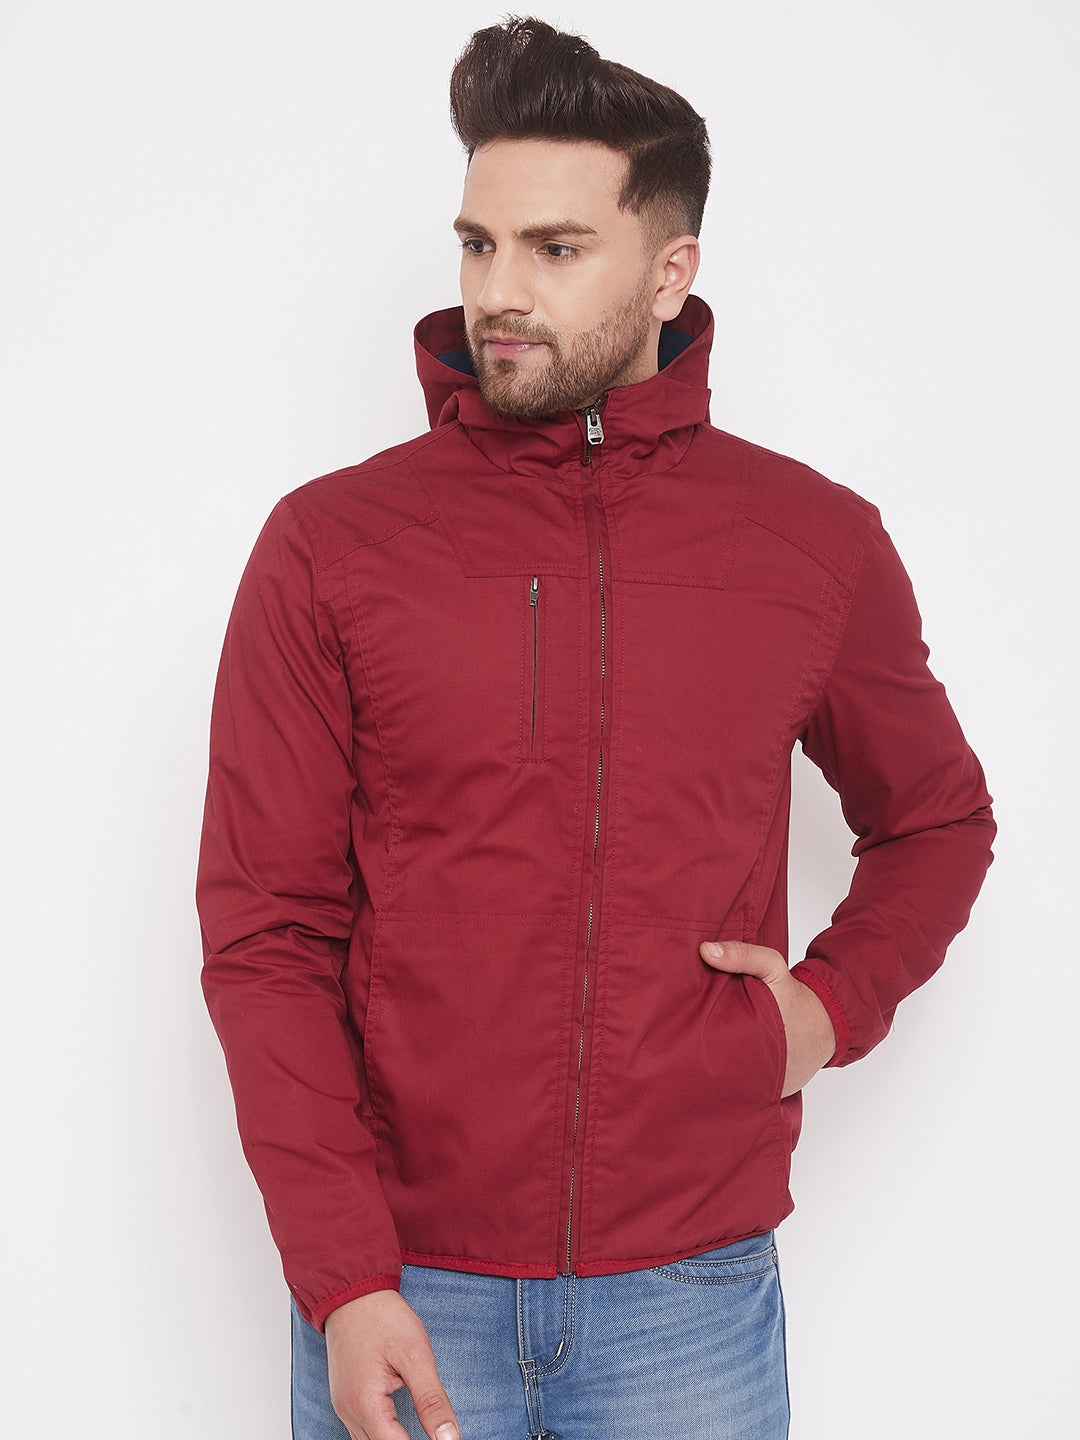 JUMP USA Mens Solid Red Hood Tailored Jacket